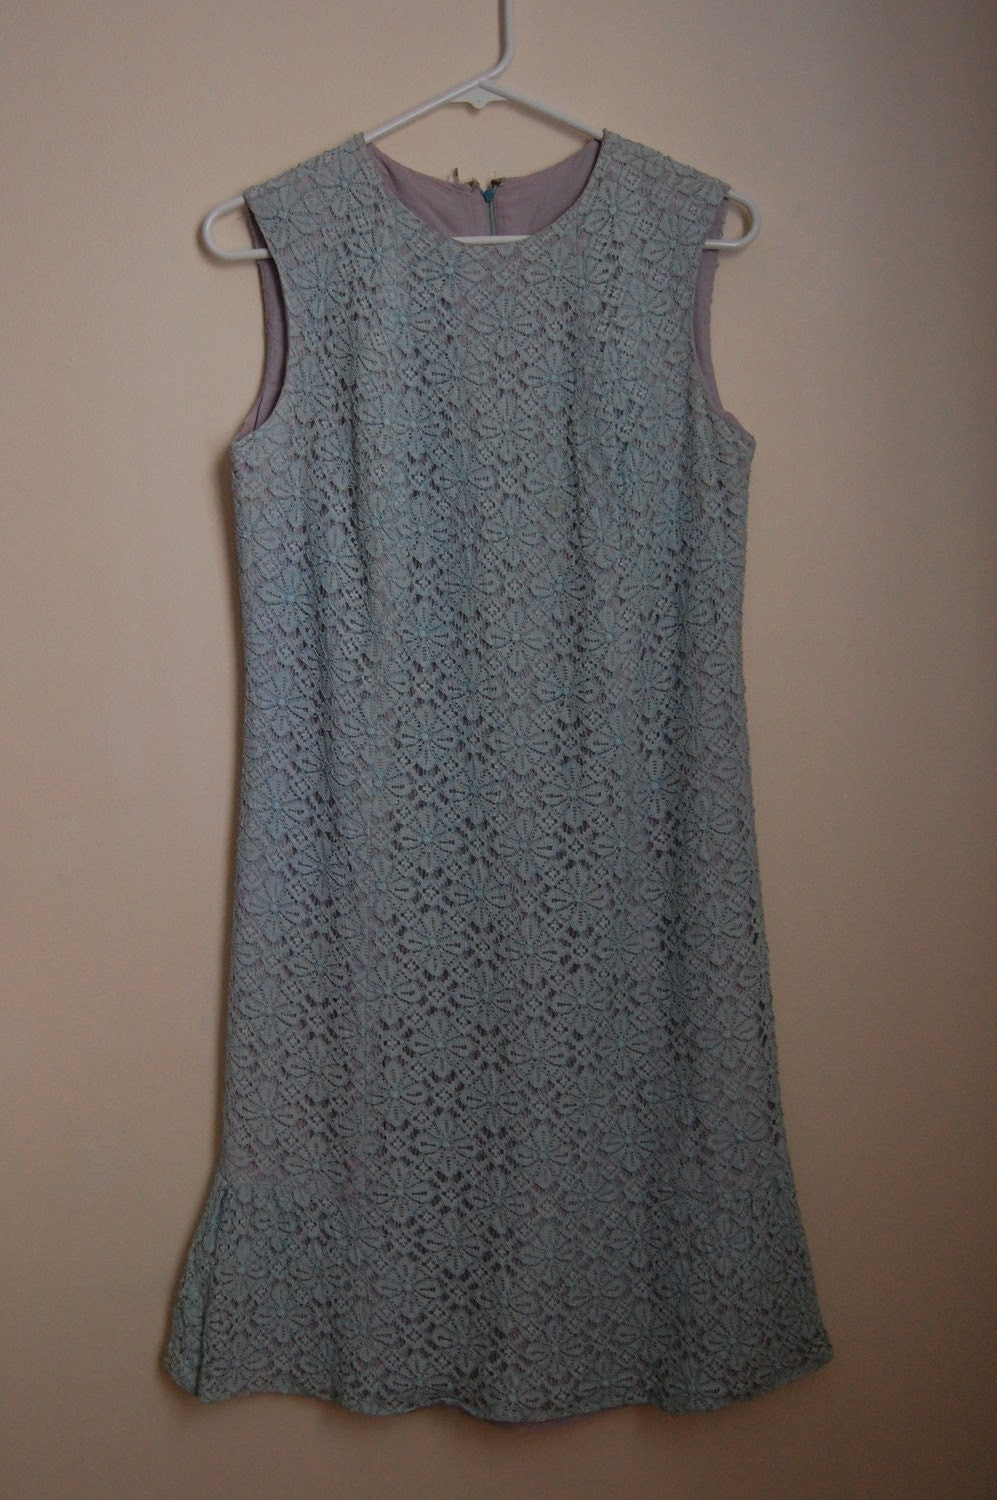 Vintage GARDEN PARTY Blue Lace Dress - Medium SALE